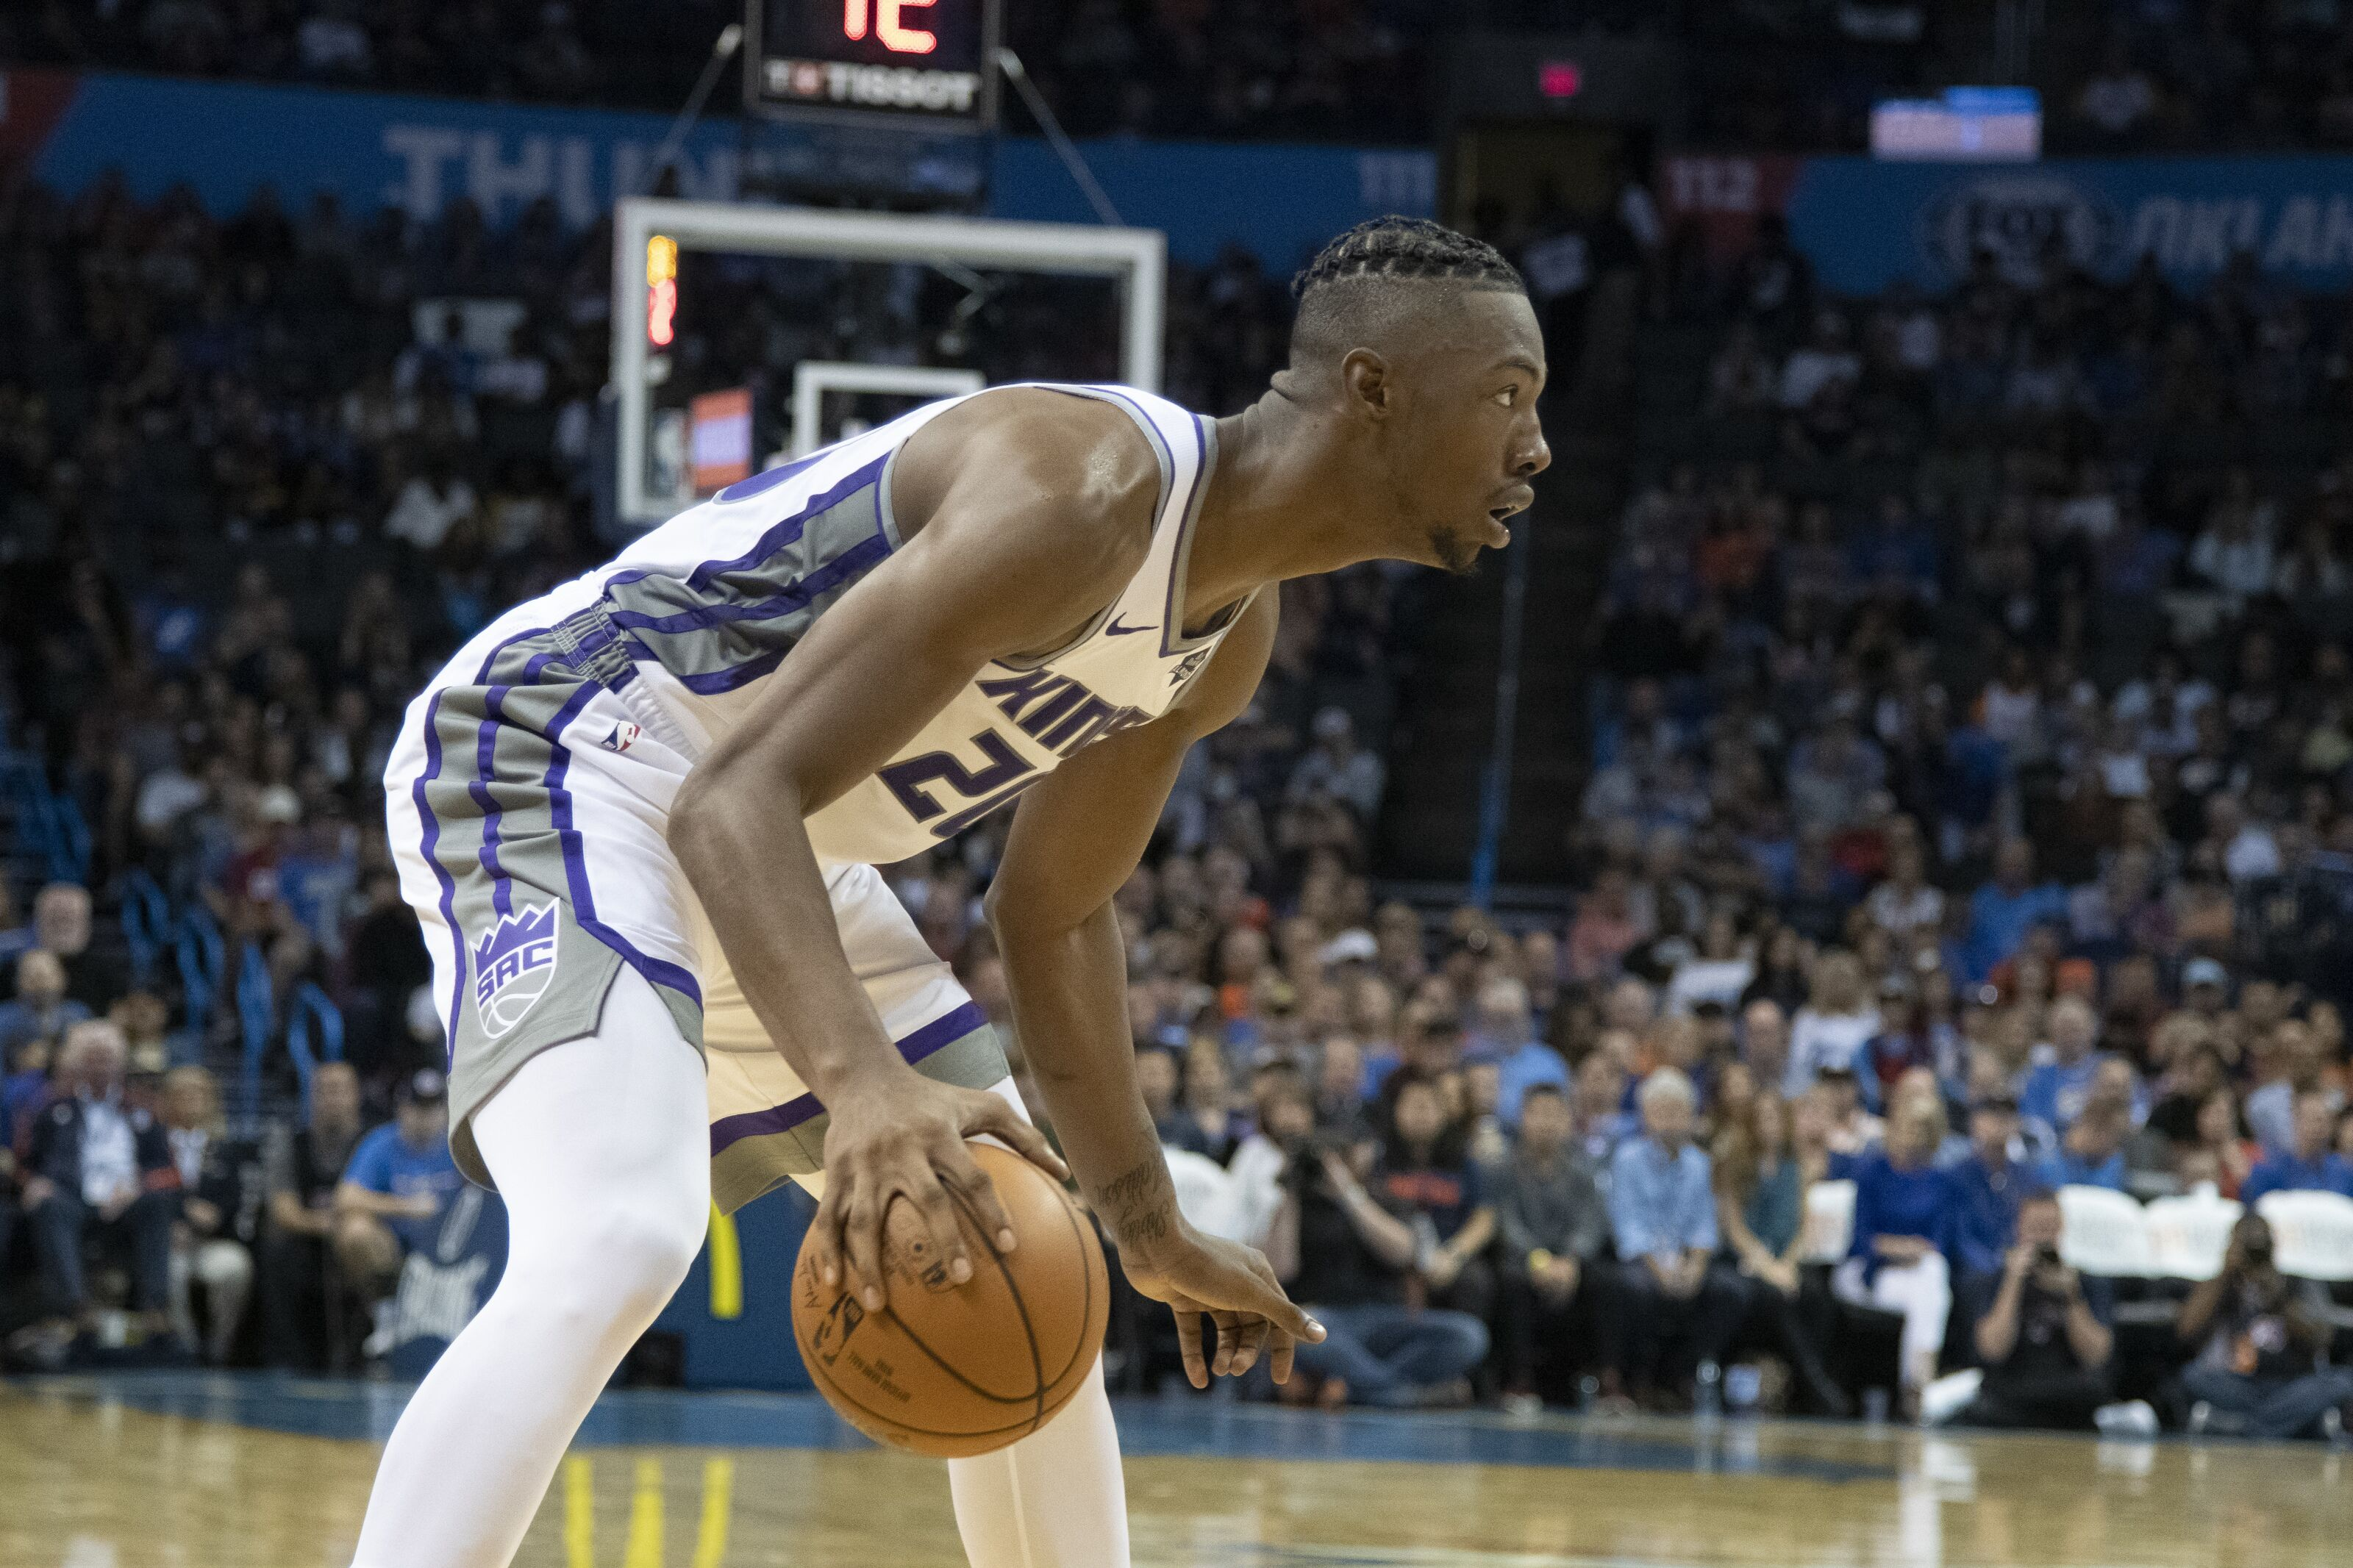 Duke basketball in the NBA: Harry Giles proves positive vibes pay off